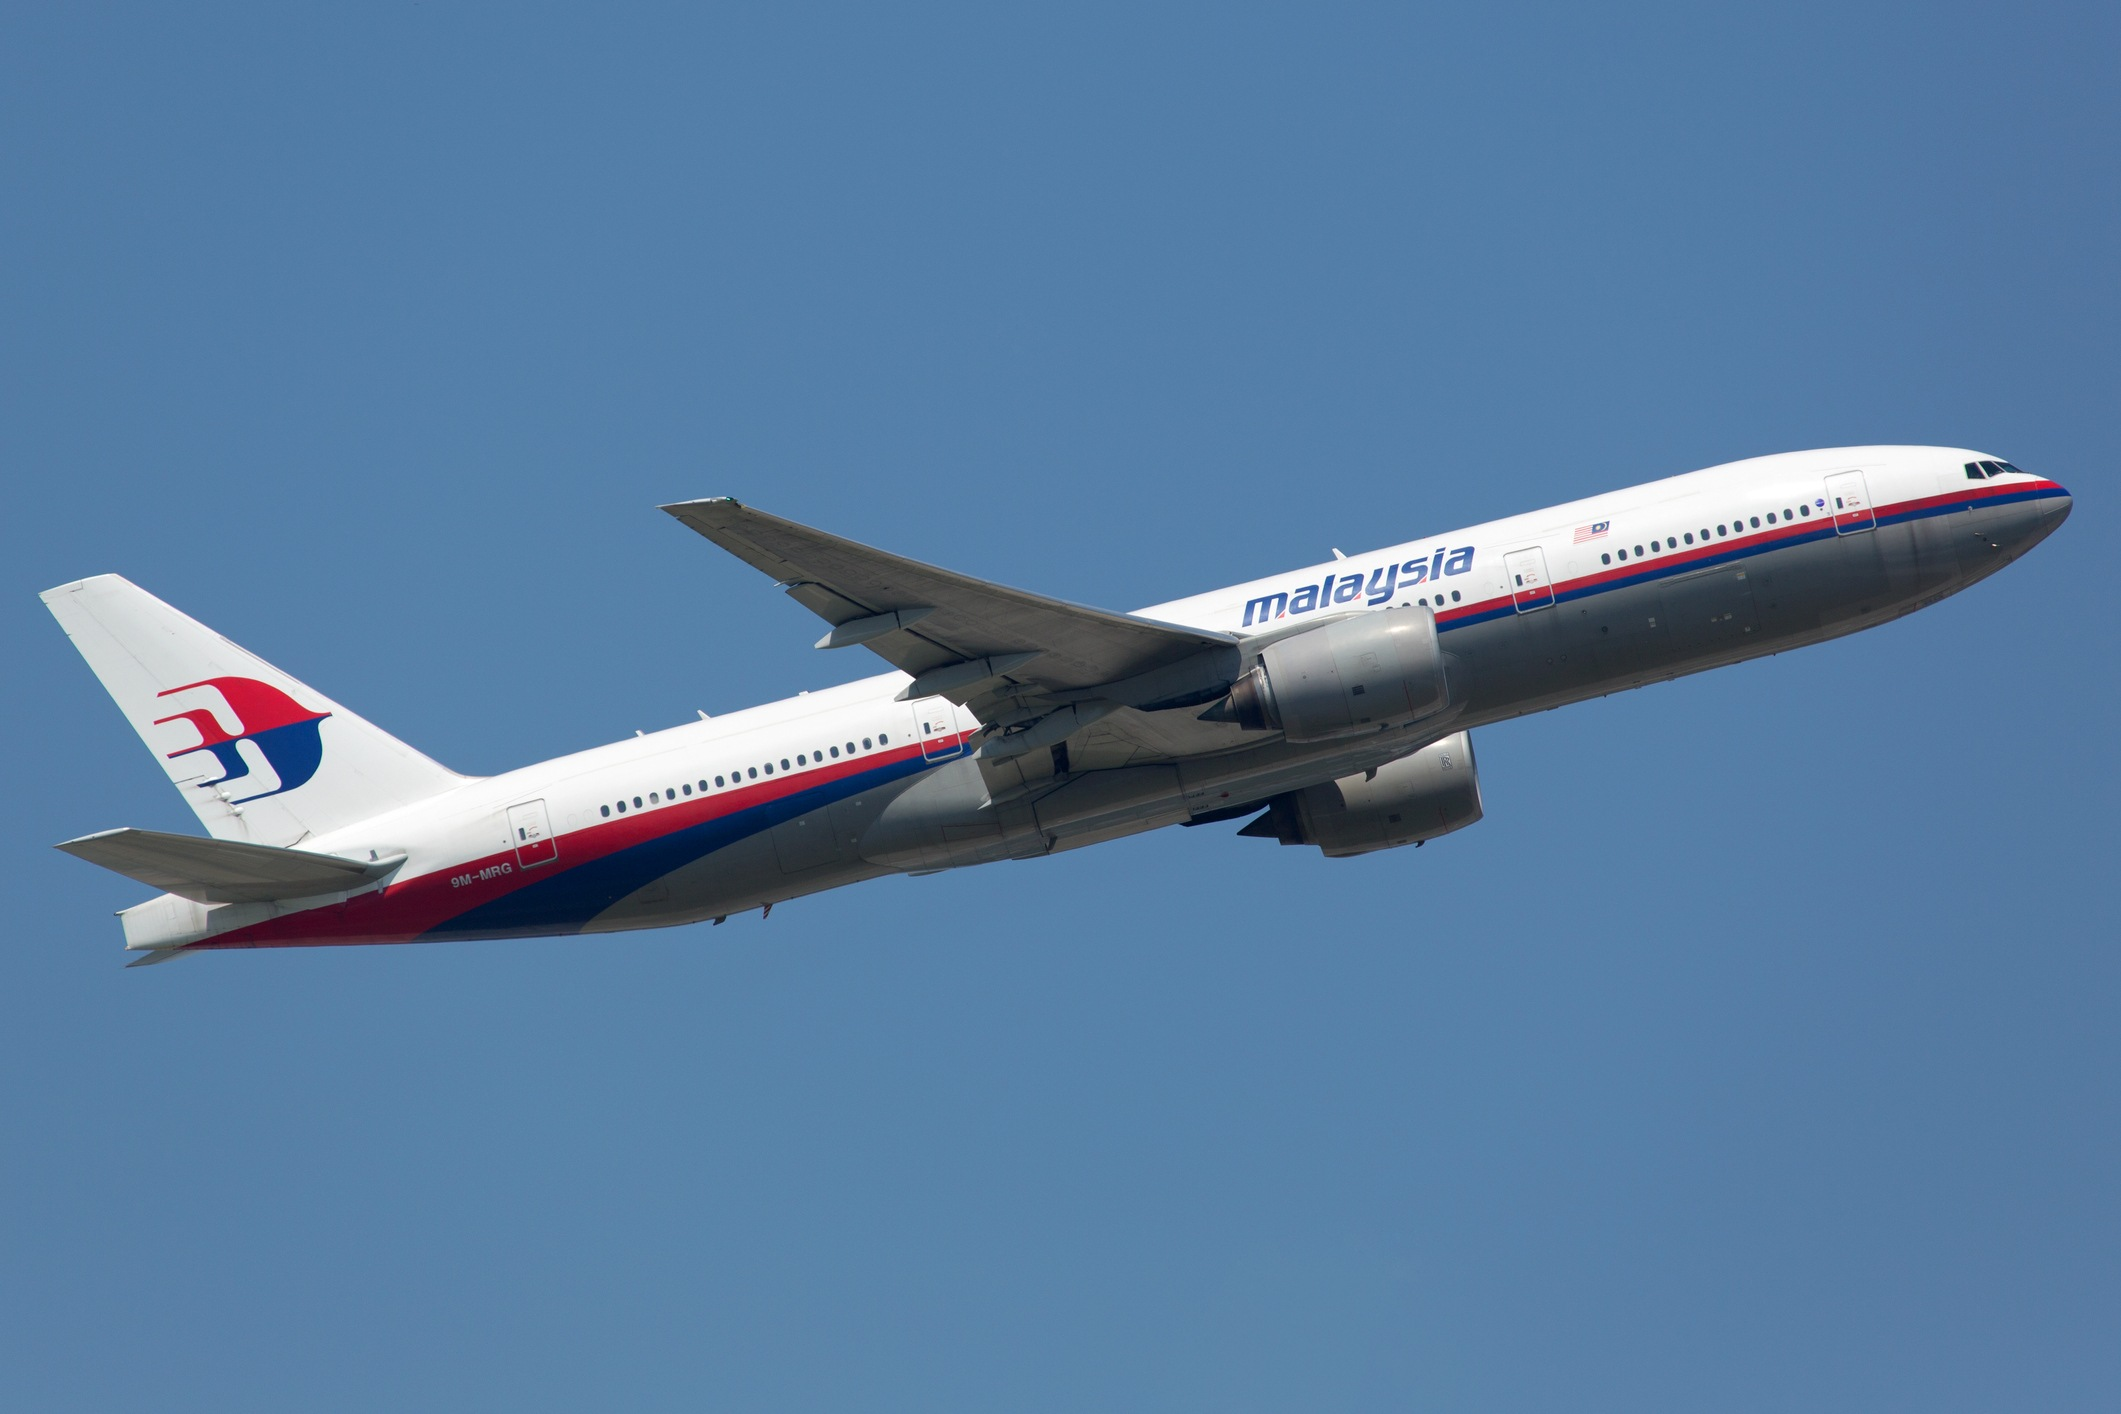 Malaysia Airlines Boeing 777-200 sister aircraft of crashed planes